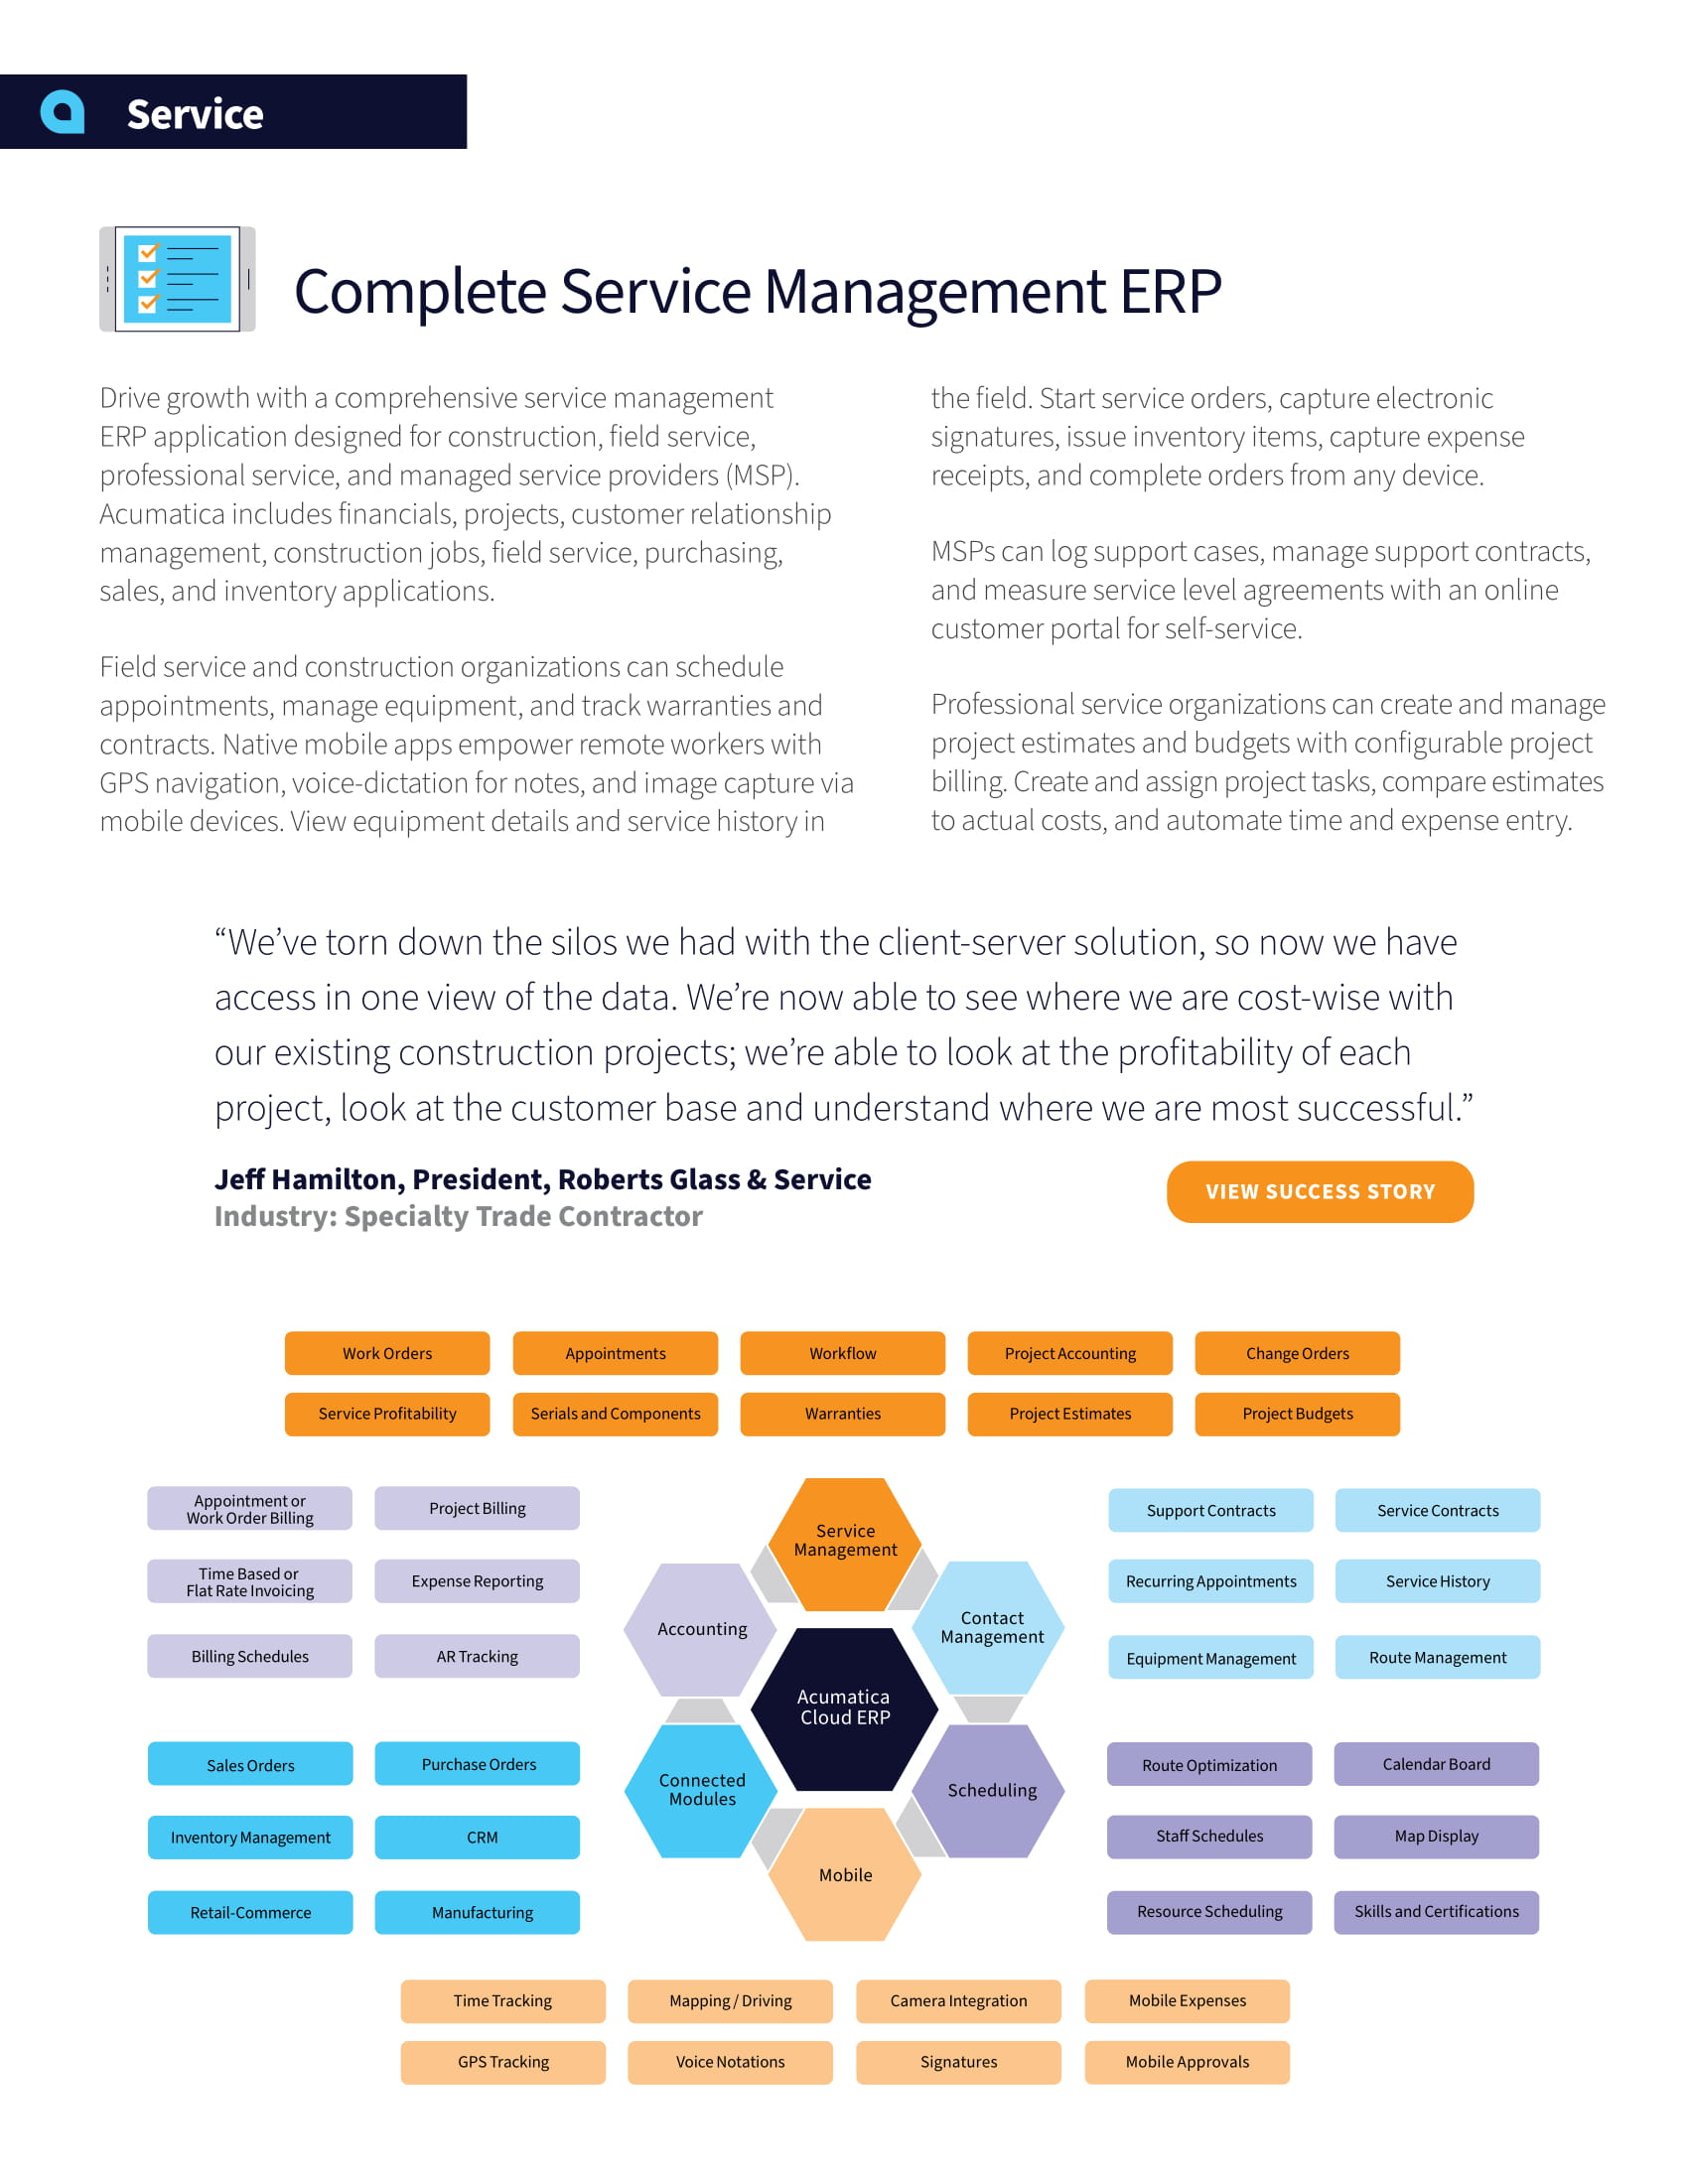 Drive Growth with Cloud Service Management Applications, page 1